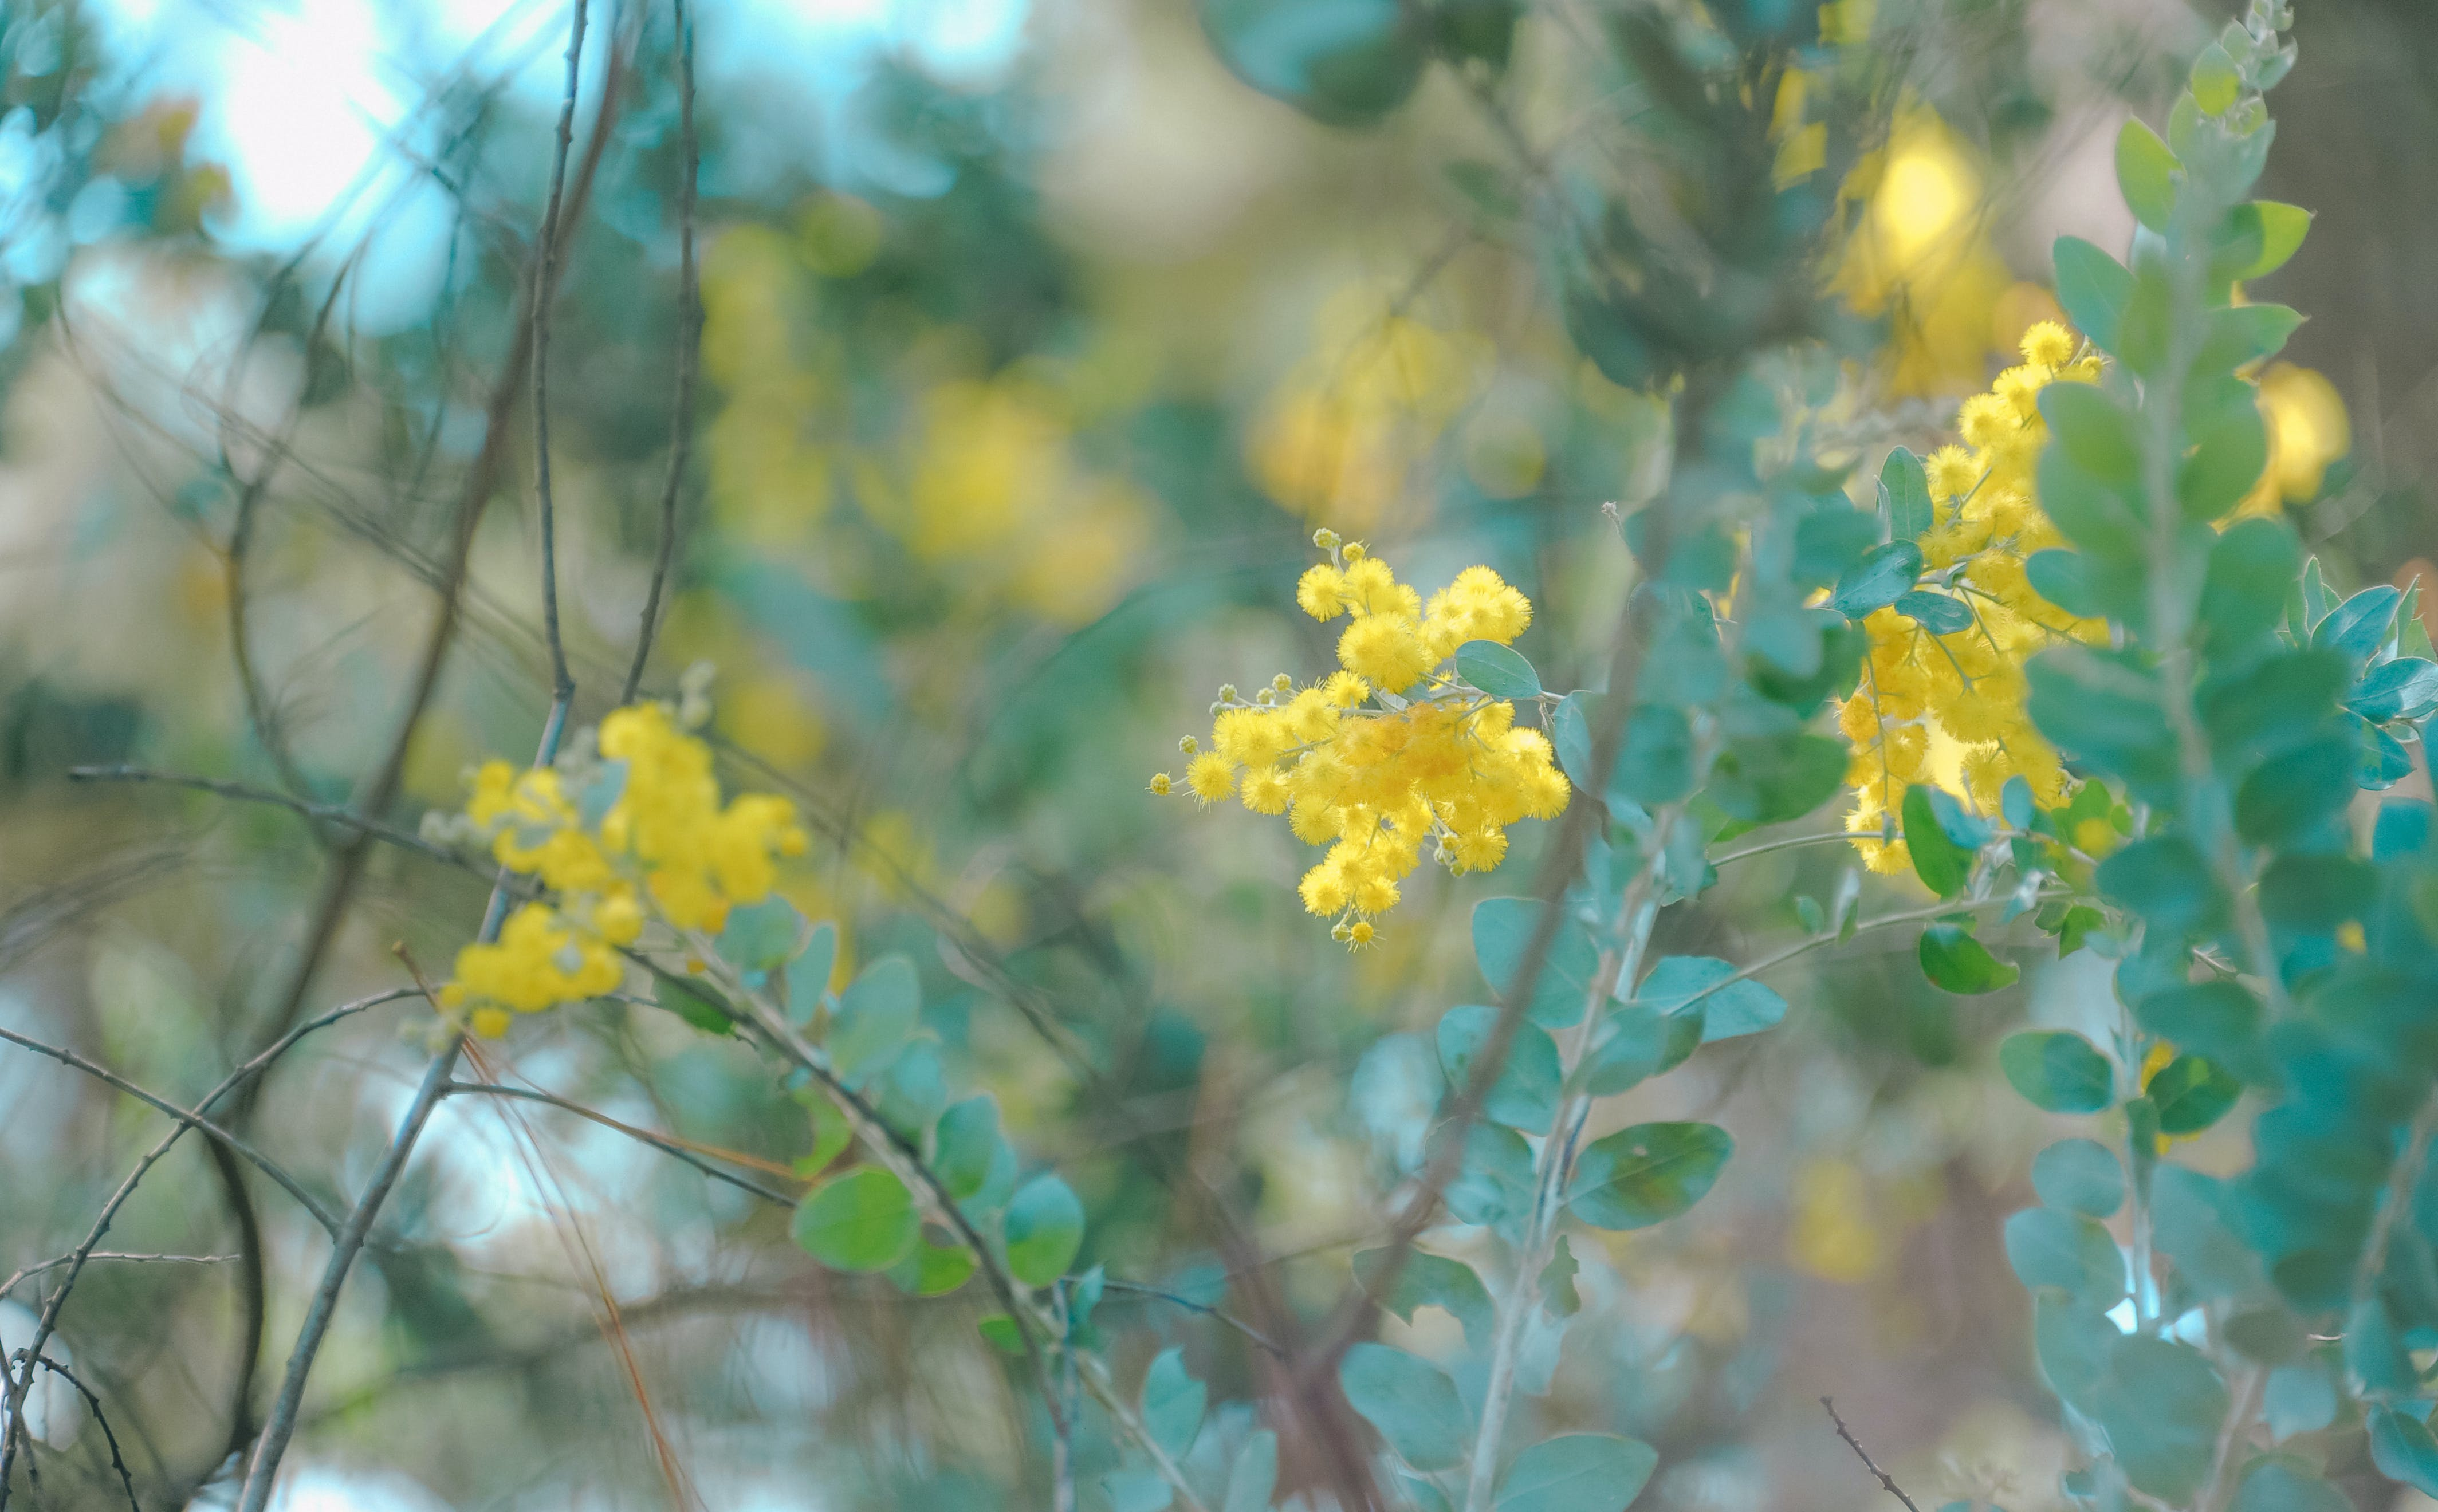 Shallow Focus Photography of Tree With Yellow Petal Flowers